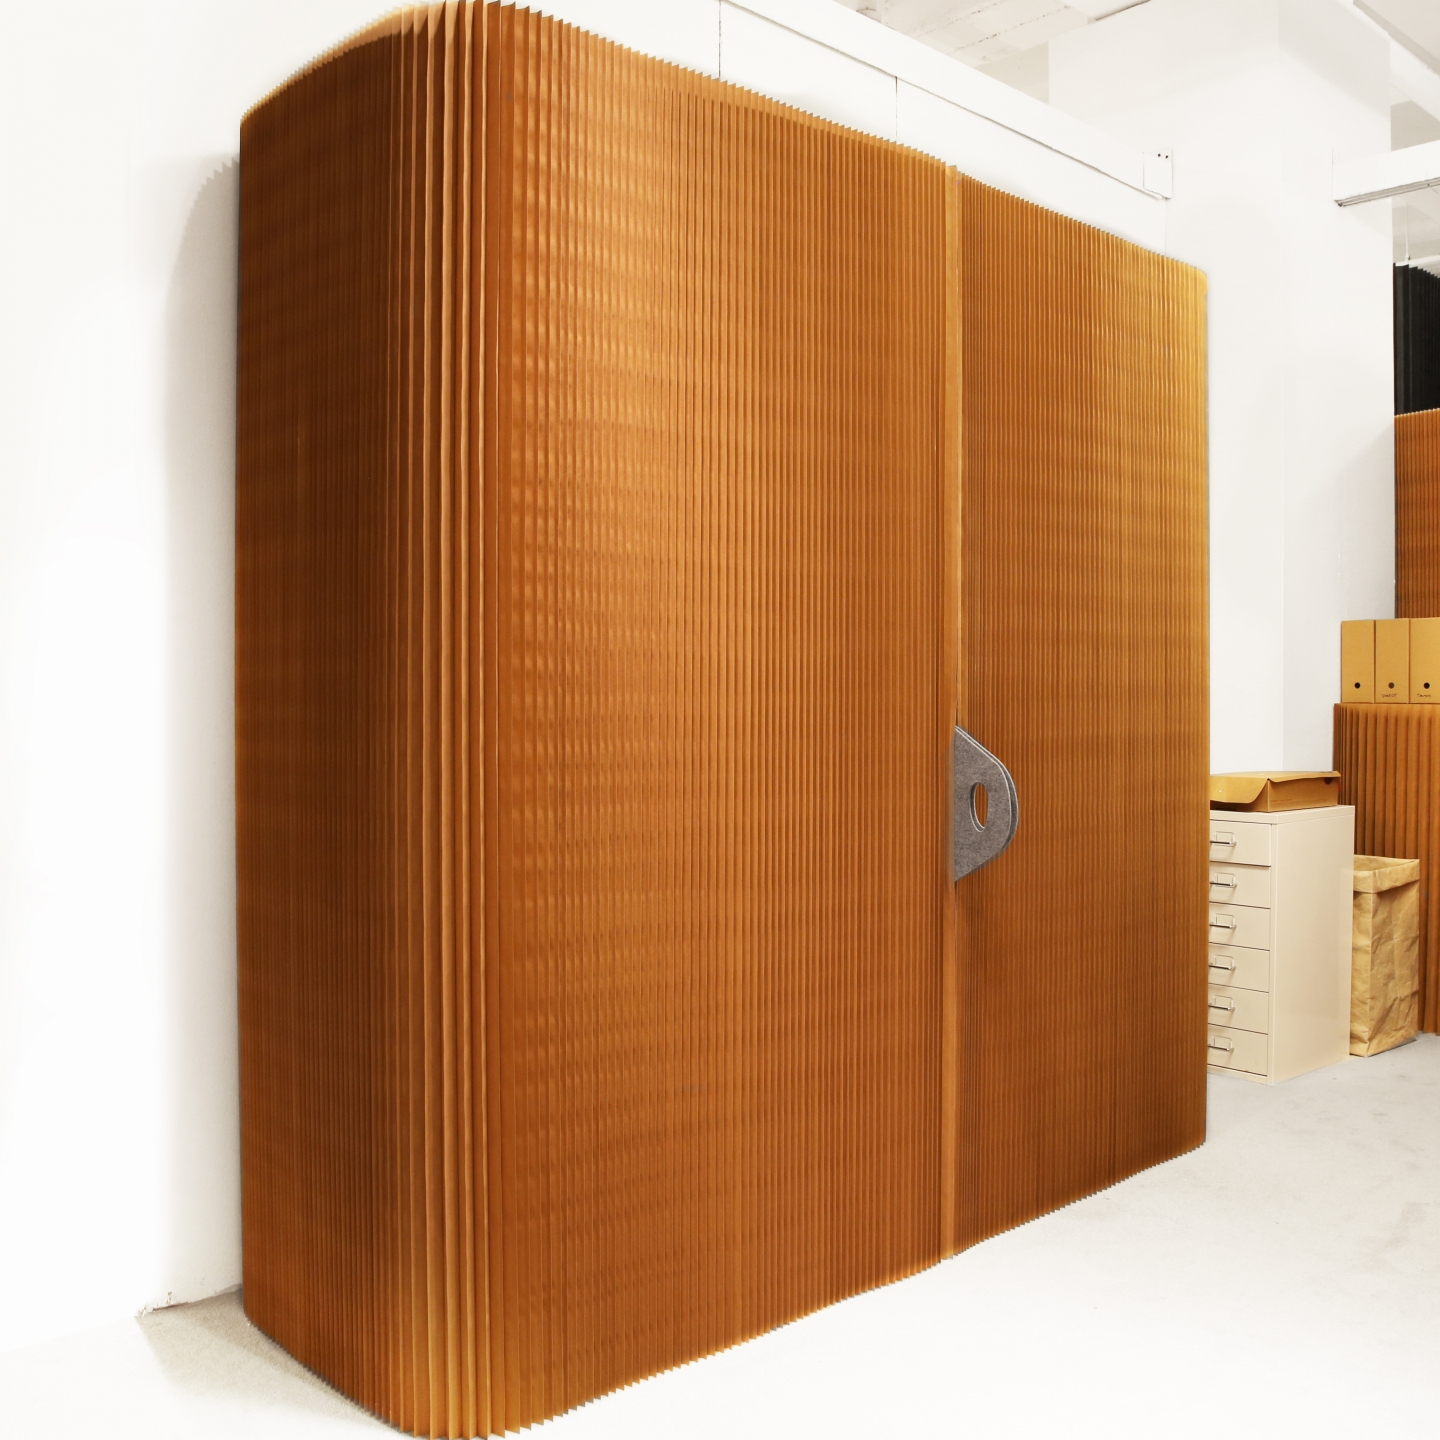 thinwall / acoustic wall liner and cabinet enclosure - paper furniture by molo